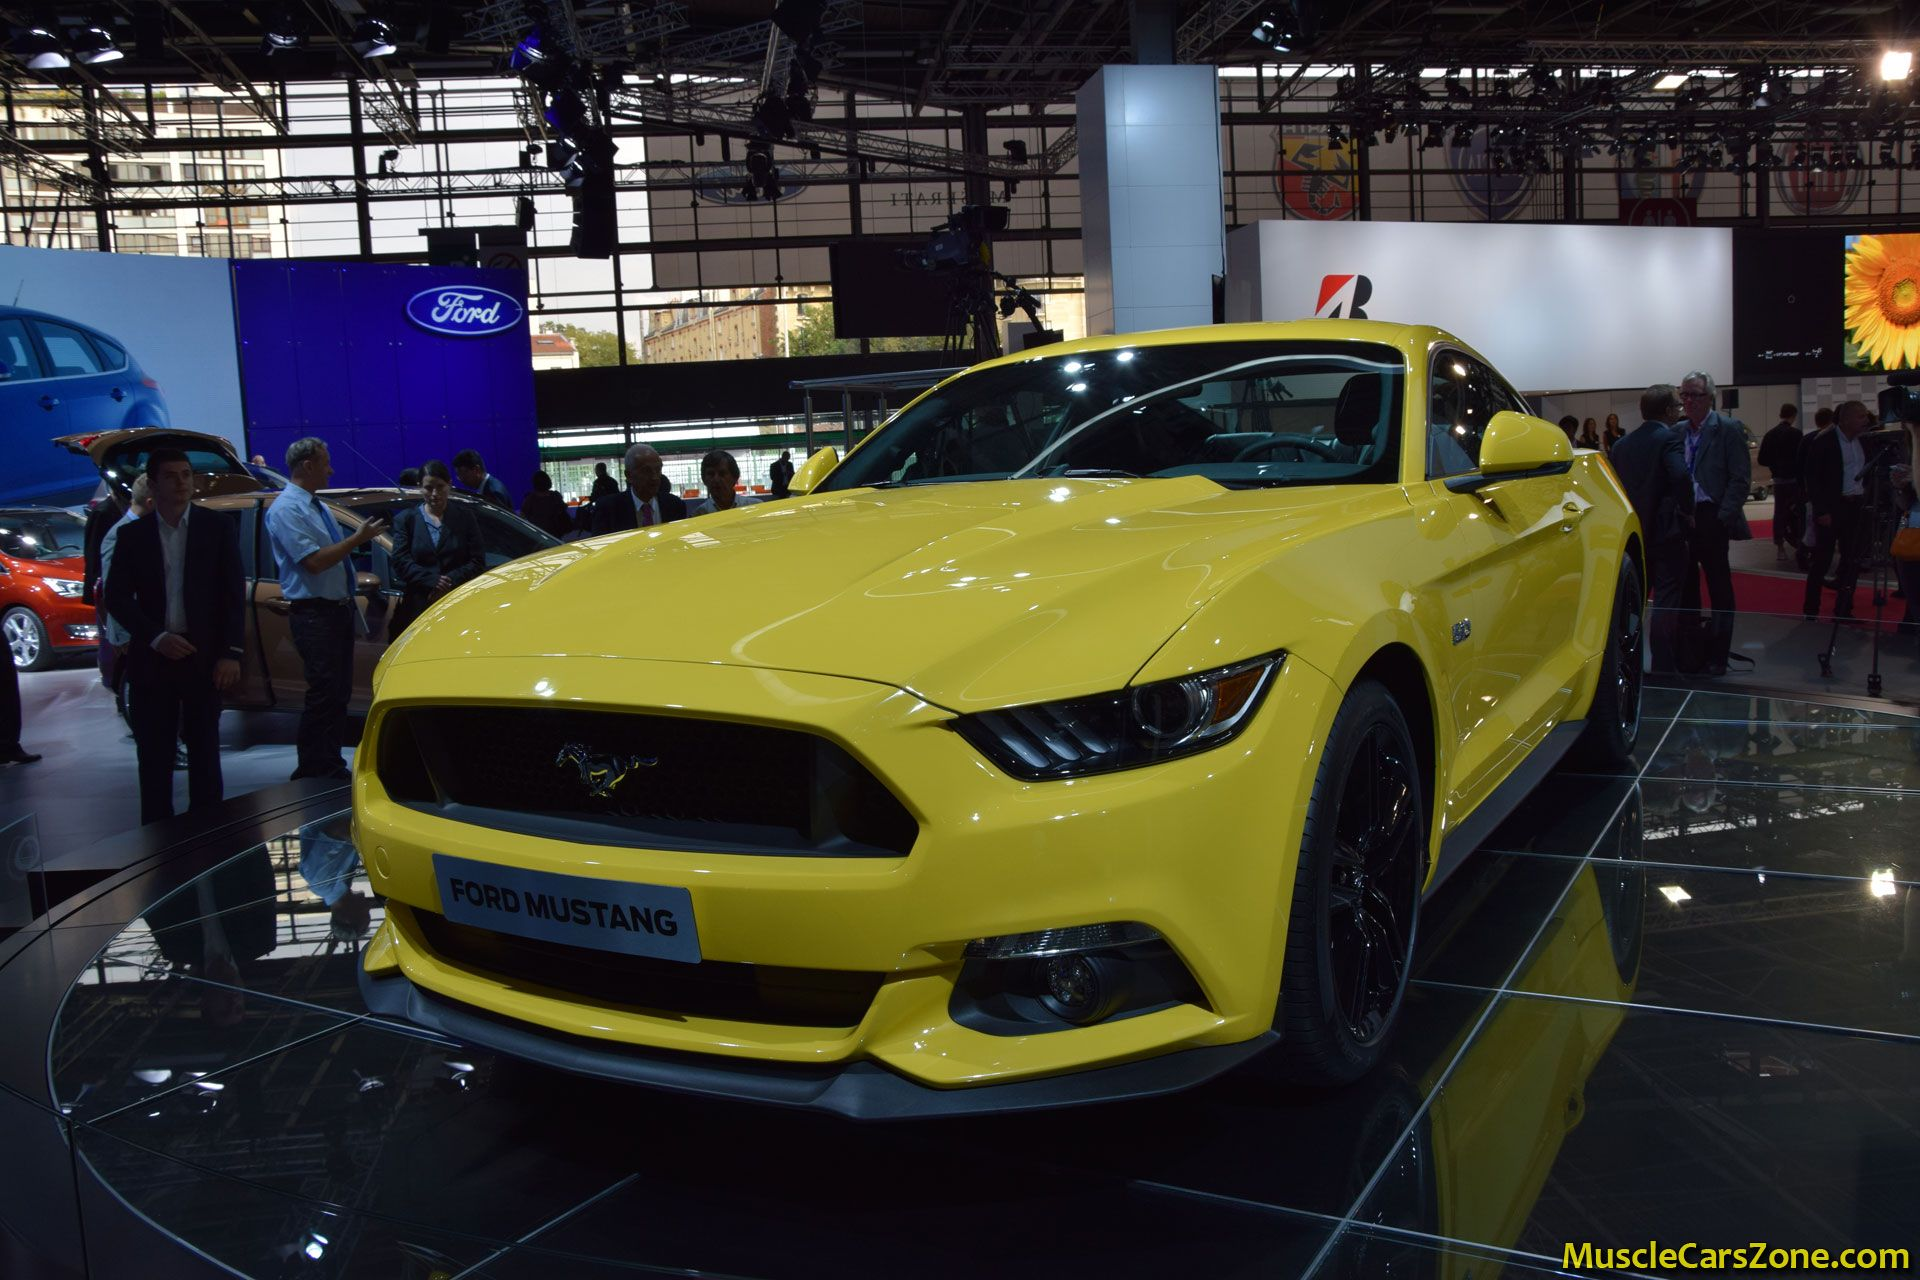 2015 ford mustang 2014 paris motor show 5 muscle cars zone. Black Bedroom Furniture Sets. Home Design Ideas